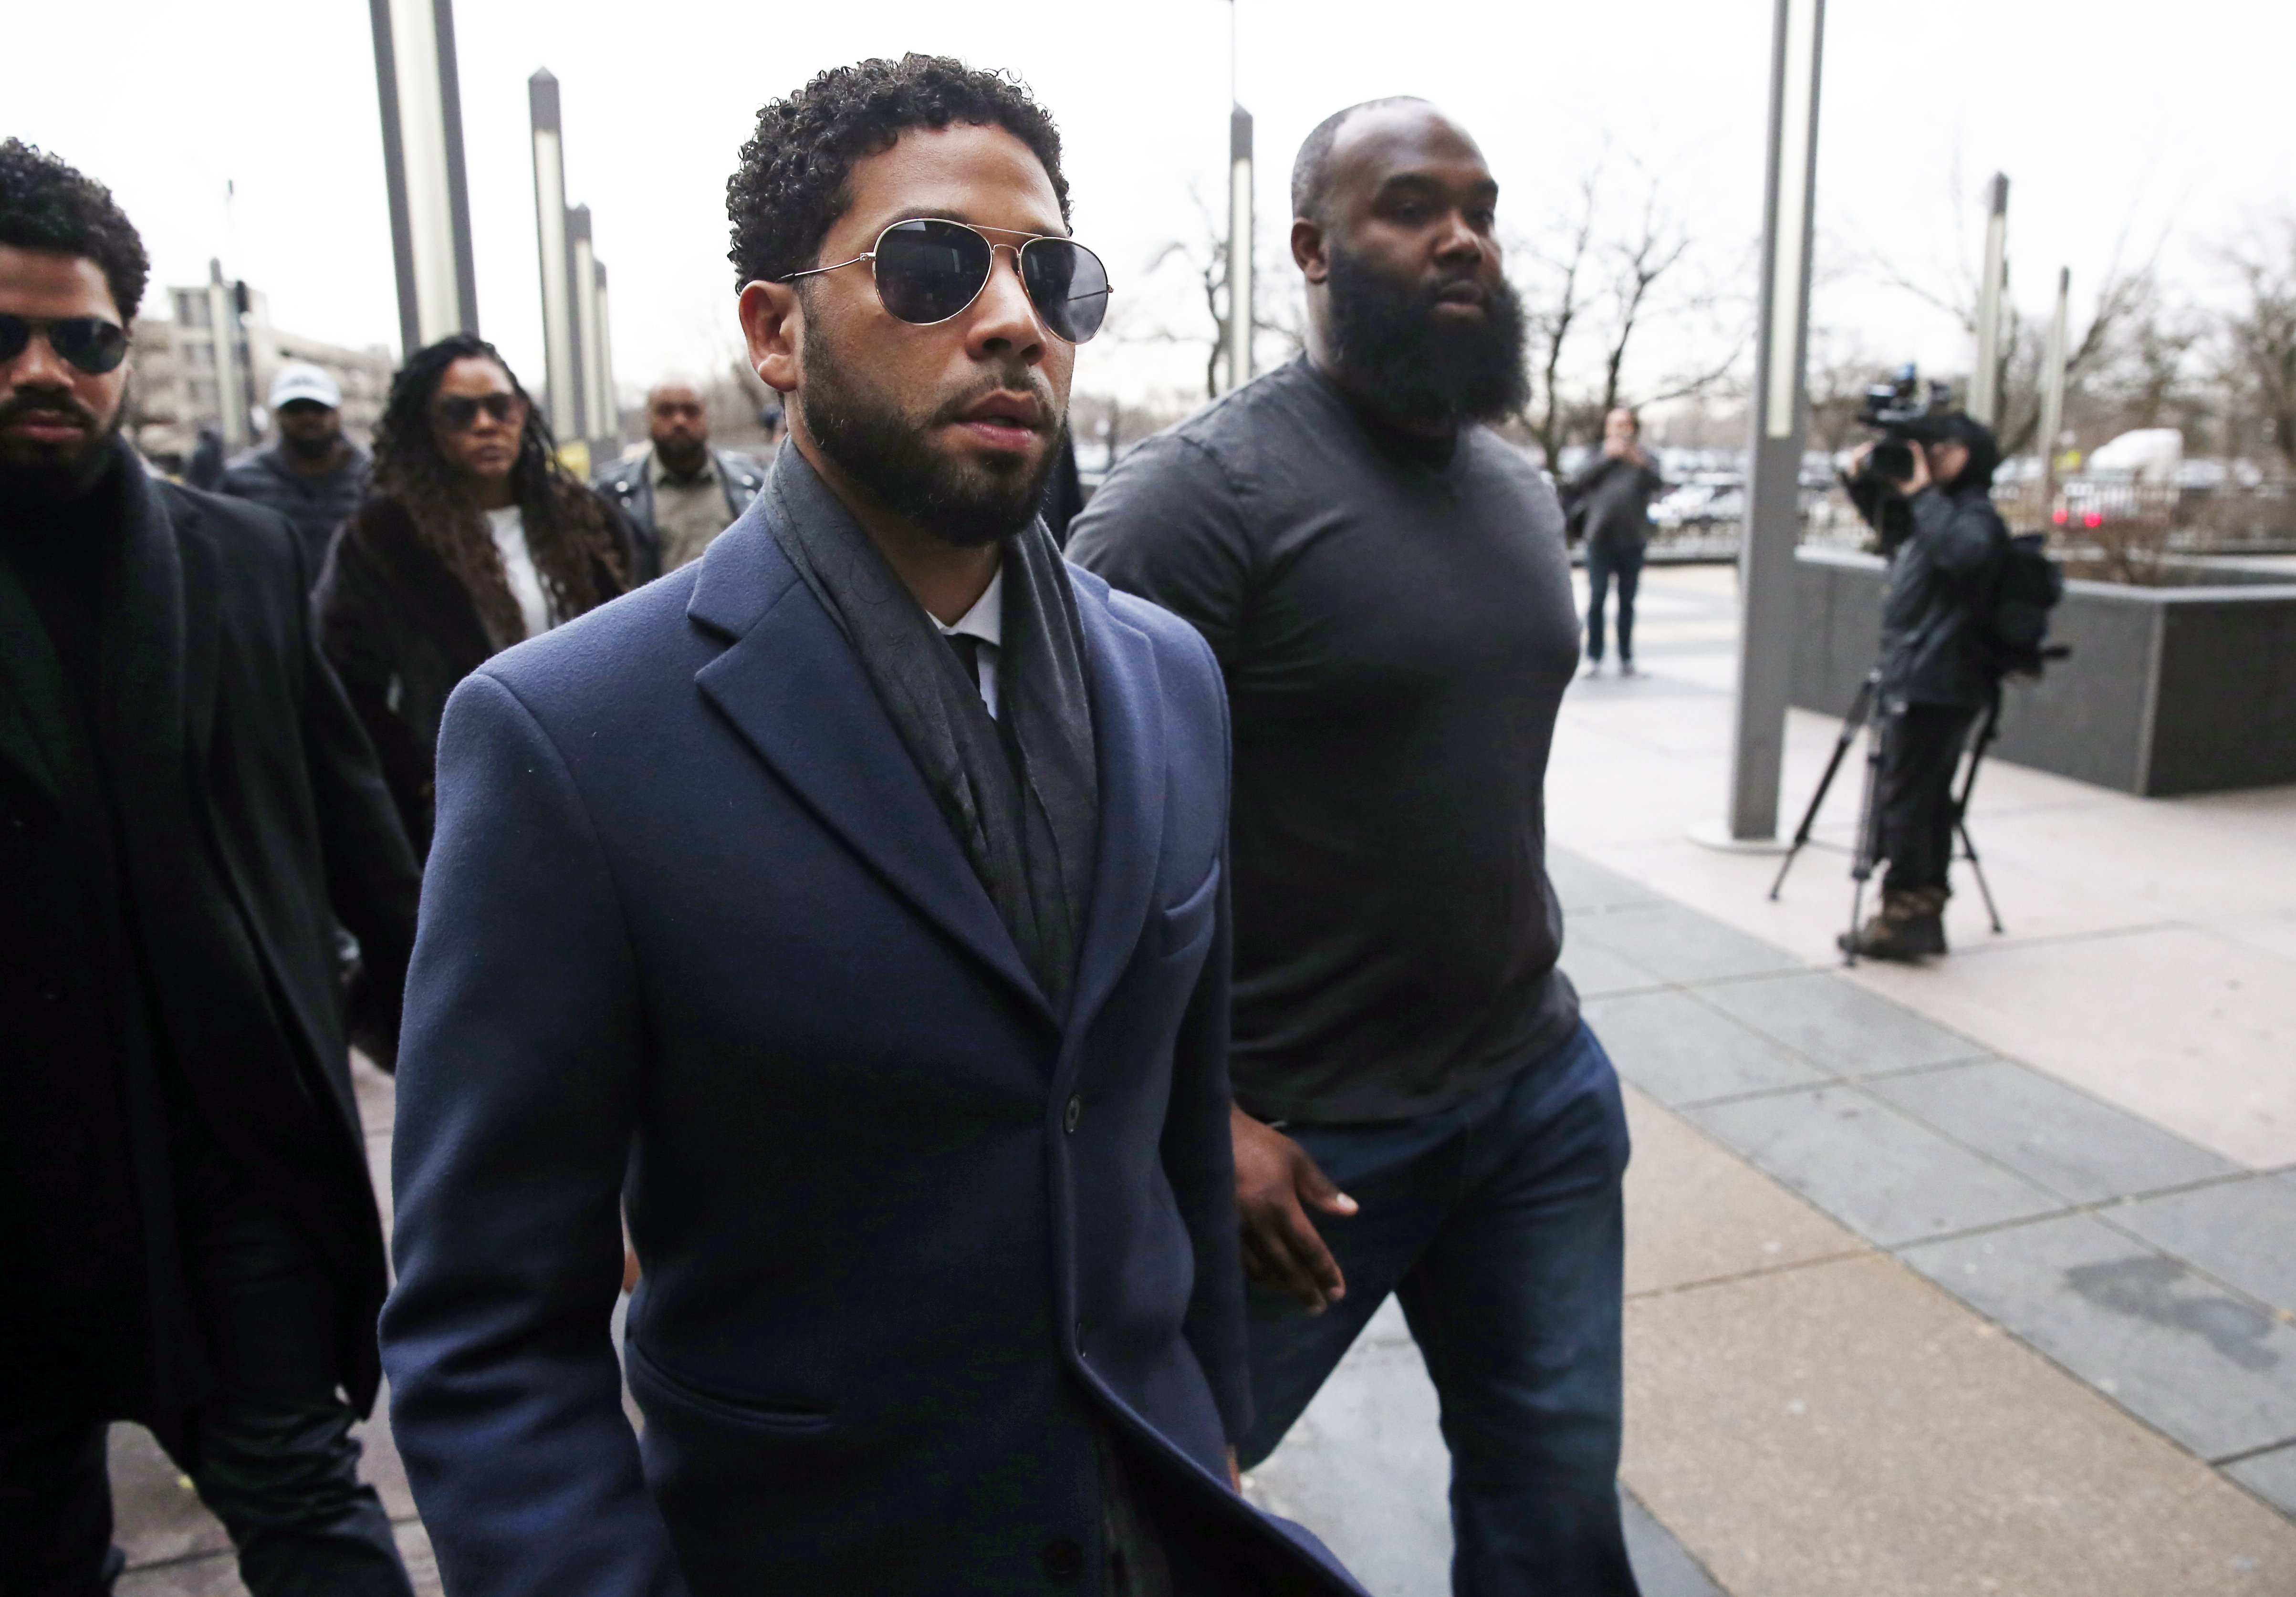 ussie Smollett arrives at Leighton Criminal Courthouse on March 14, 2019 in Chicago. | Photo: GettyImages/Global Images of Ukraine